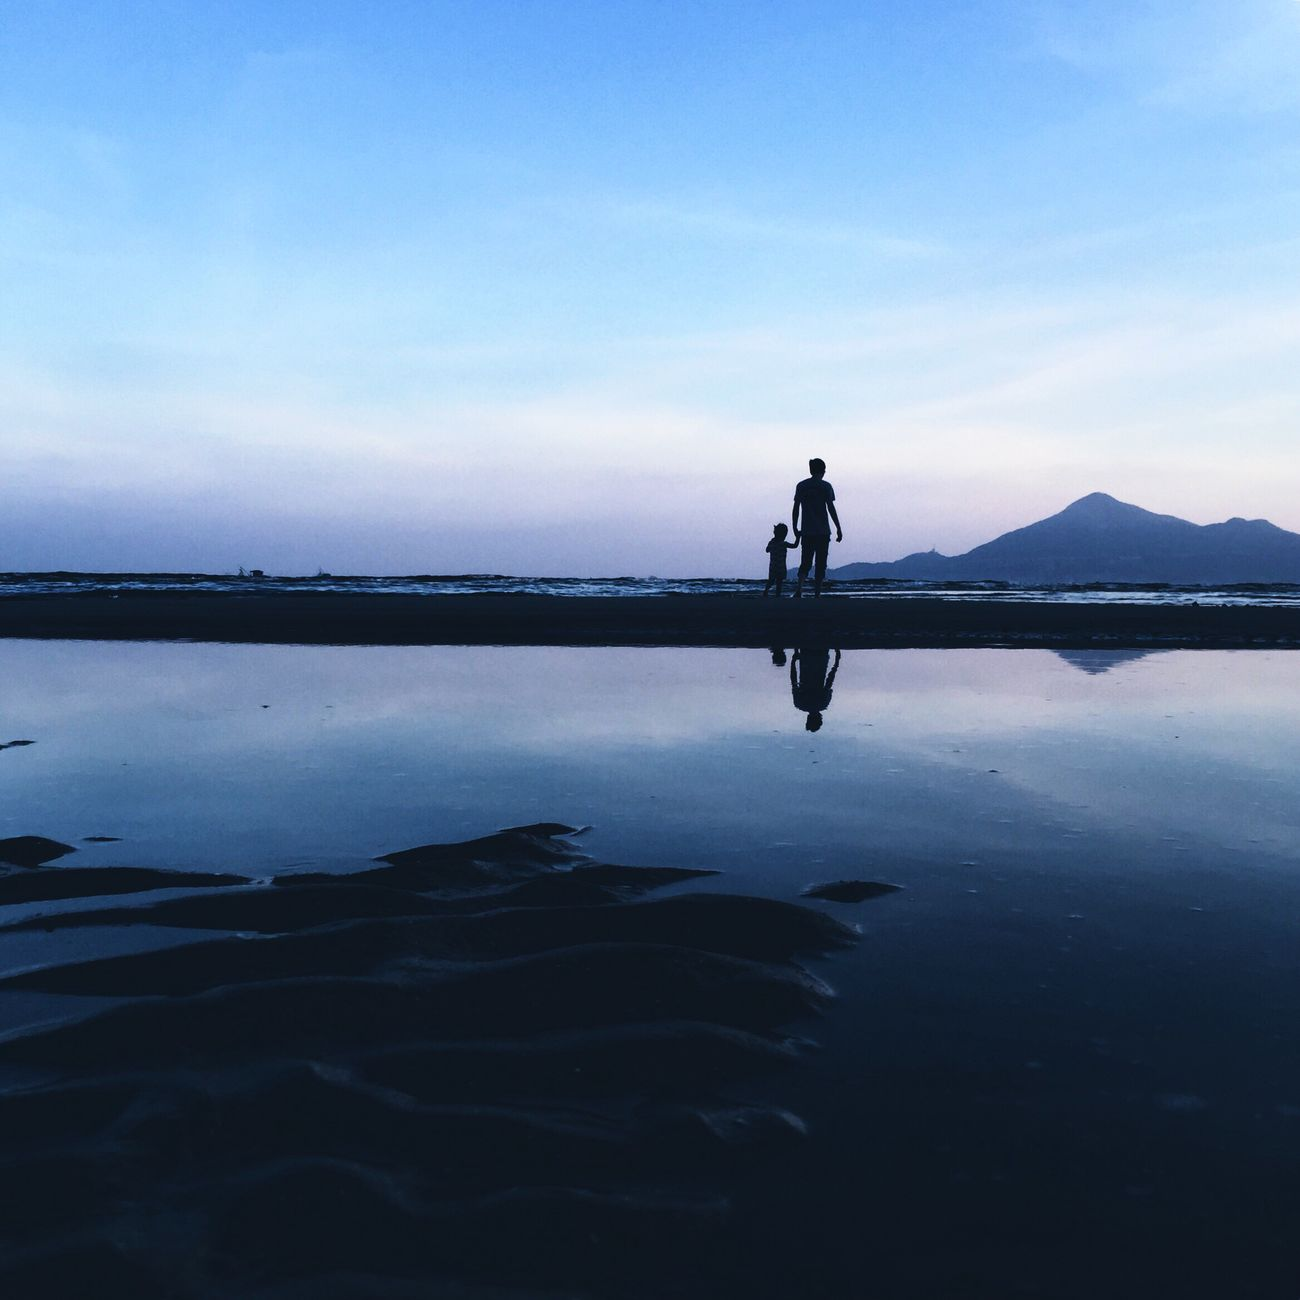 DONGSHAN ISLAND- 旅志 Water Reflection Silhouette Lake Walking Men Tranquility Scenics Tranquil Scene Beach Leisure Activity Standing Mid Distance Beauty In Nature Full Length Vacations Nature Sky Cloud Blue